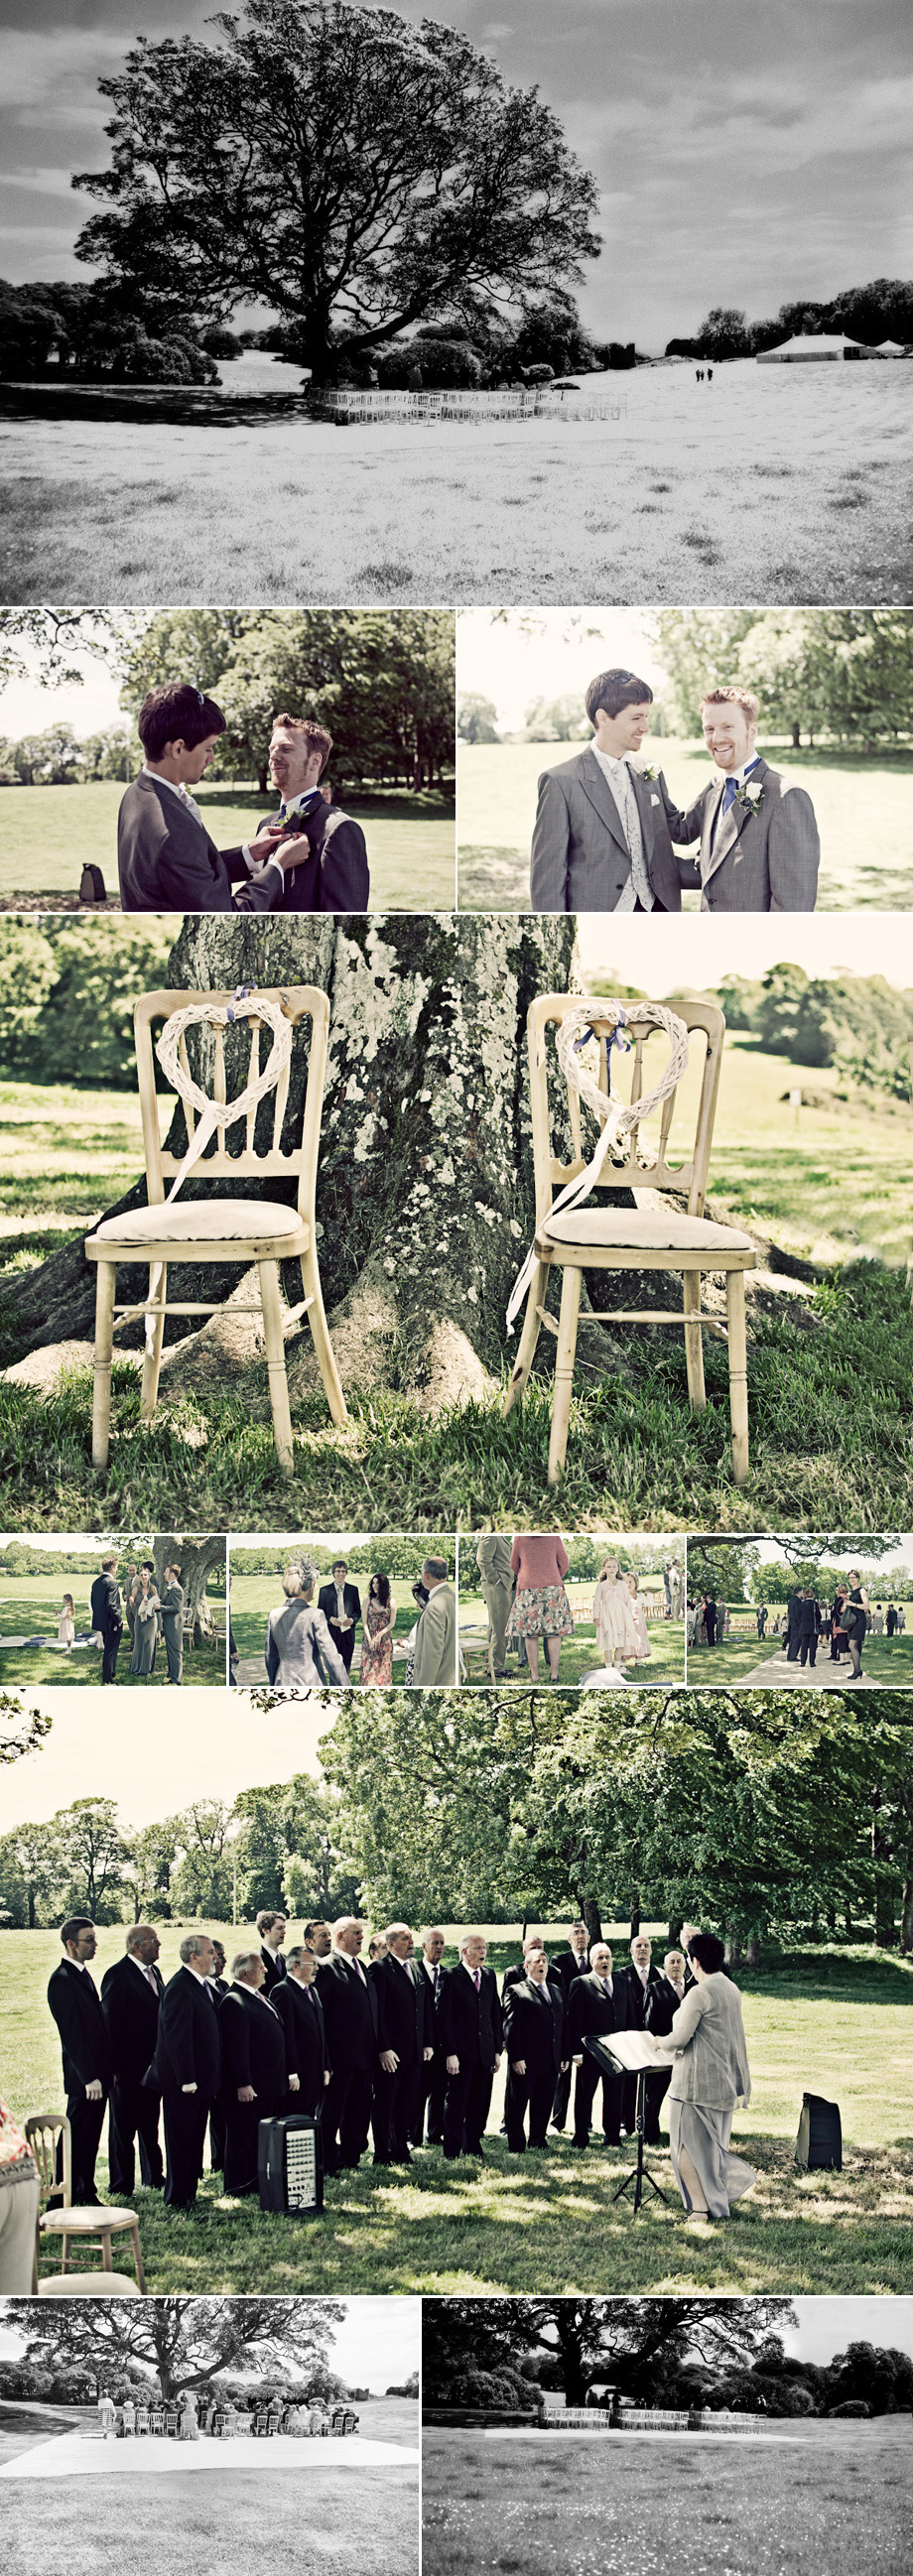 hertfordshire couples Welsh wedding